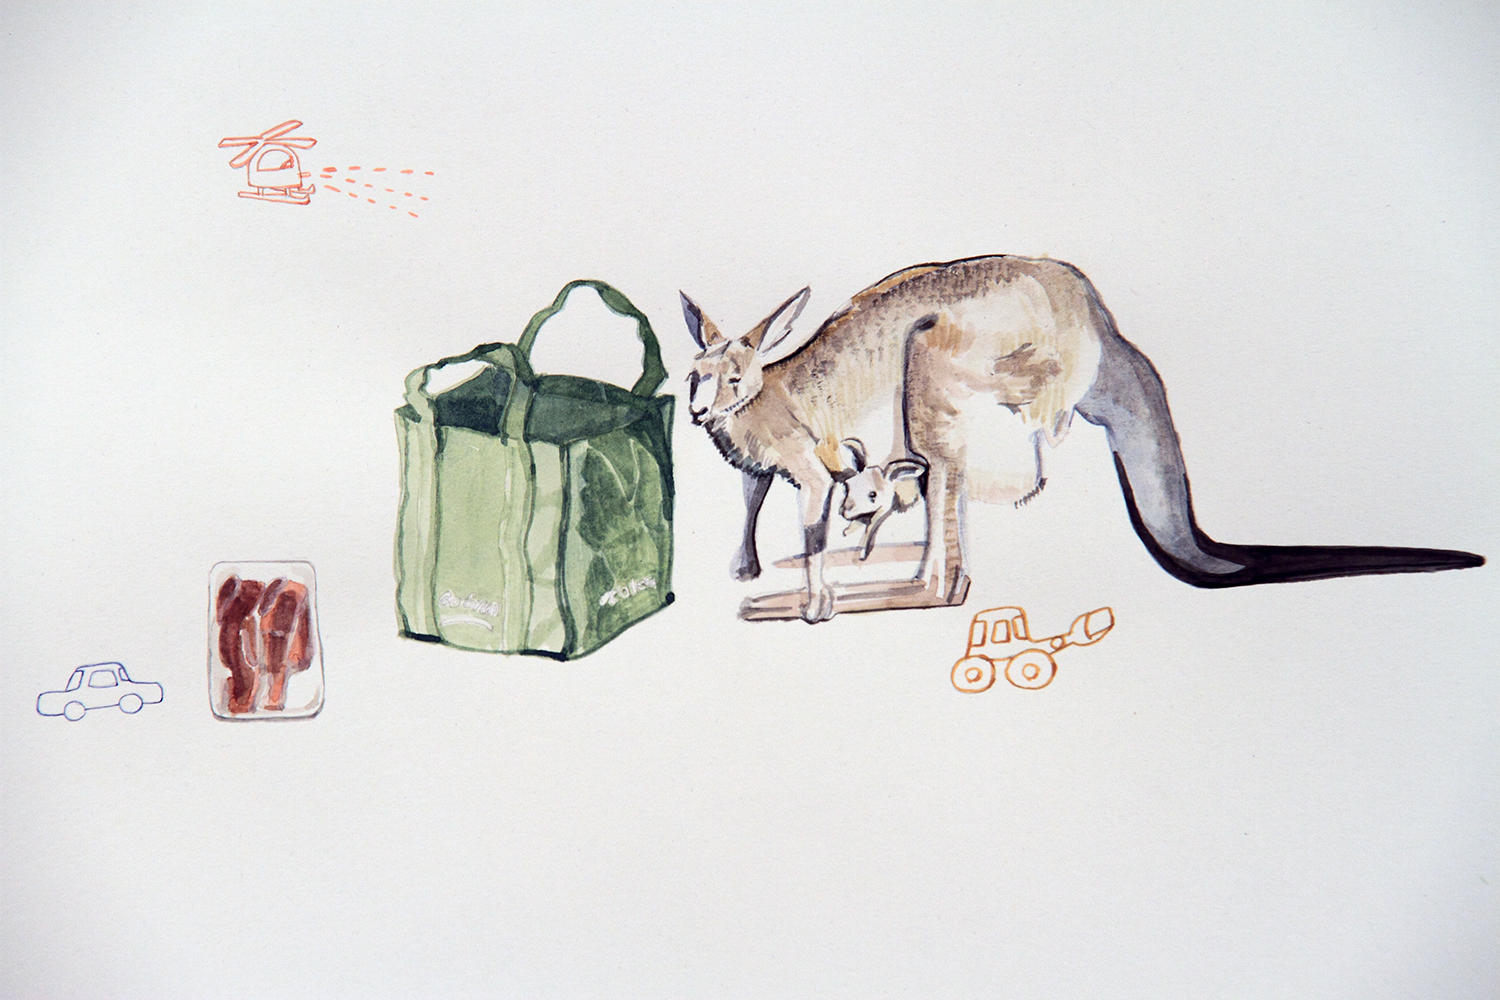 Skippy the Bush Kangaroo, 2010, Watercolour on paper, 29.7 x 42.0 cm, Photo: Michaela Gleave